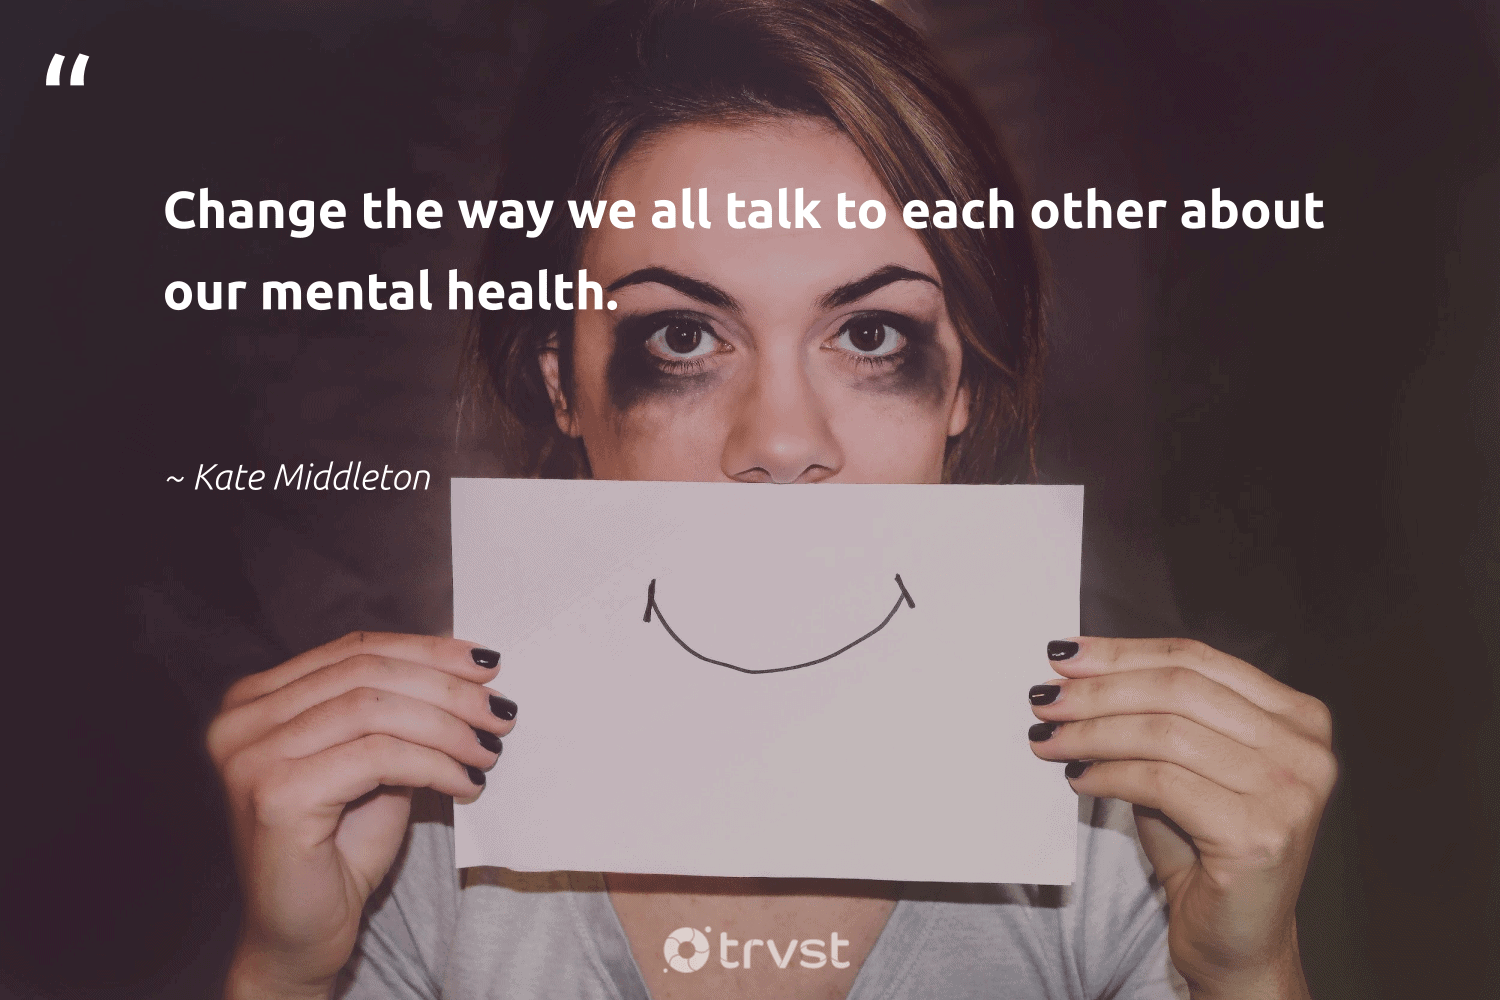 """""""Change the way we all talk to each other about our mental health.""""  - Kate Middleton #trvst #quotes #mentalhealth #health #mentalhealthmatters #togetherwecan #mindset #changetheworld #anxiety #nevergiveup #changemakers #takeaction"""